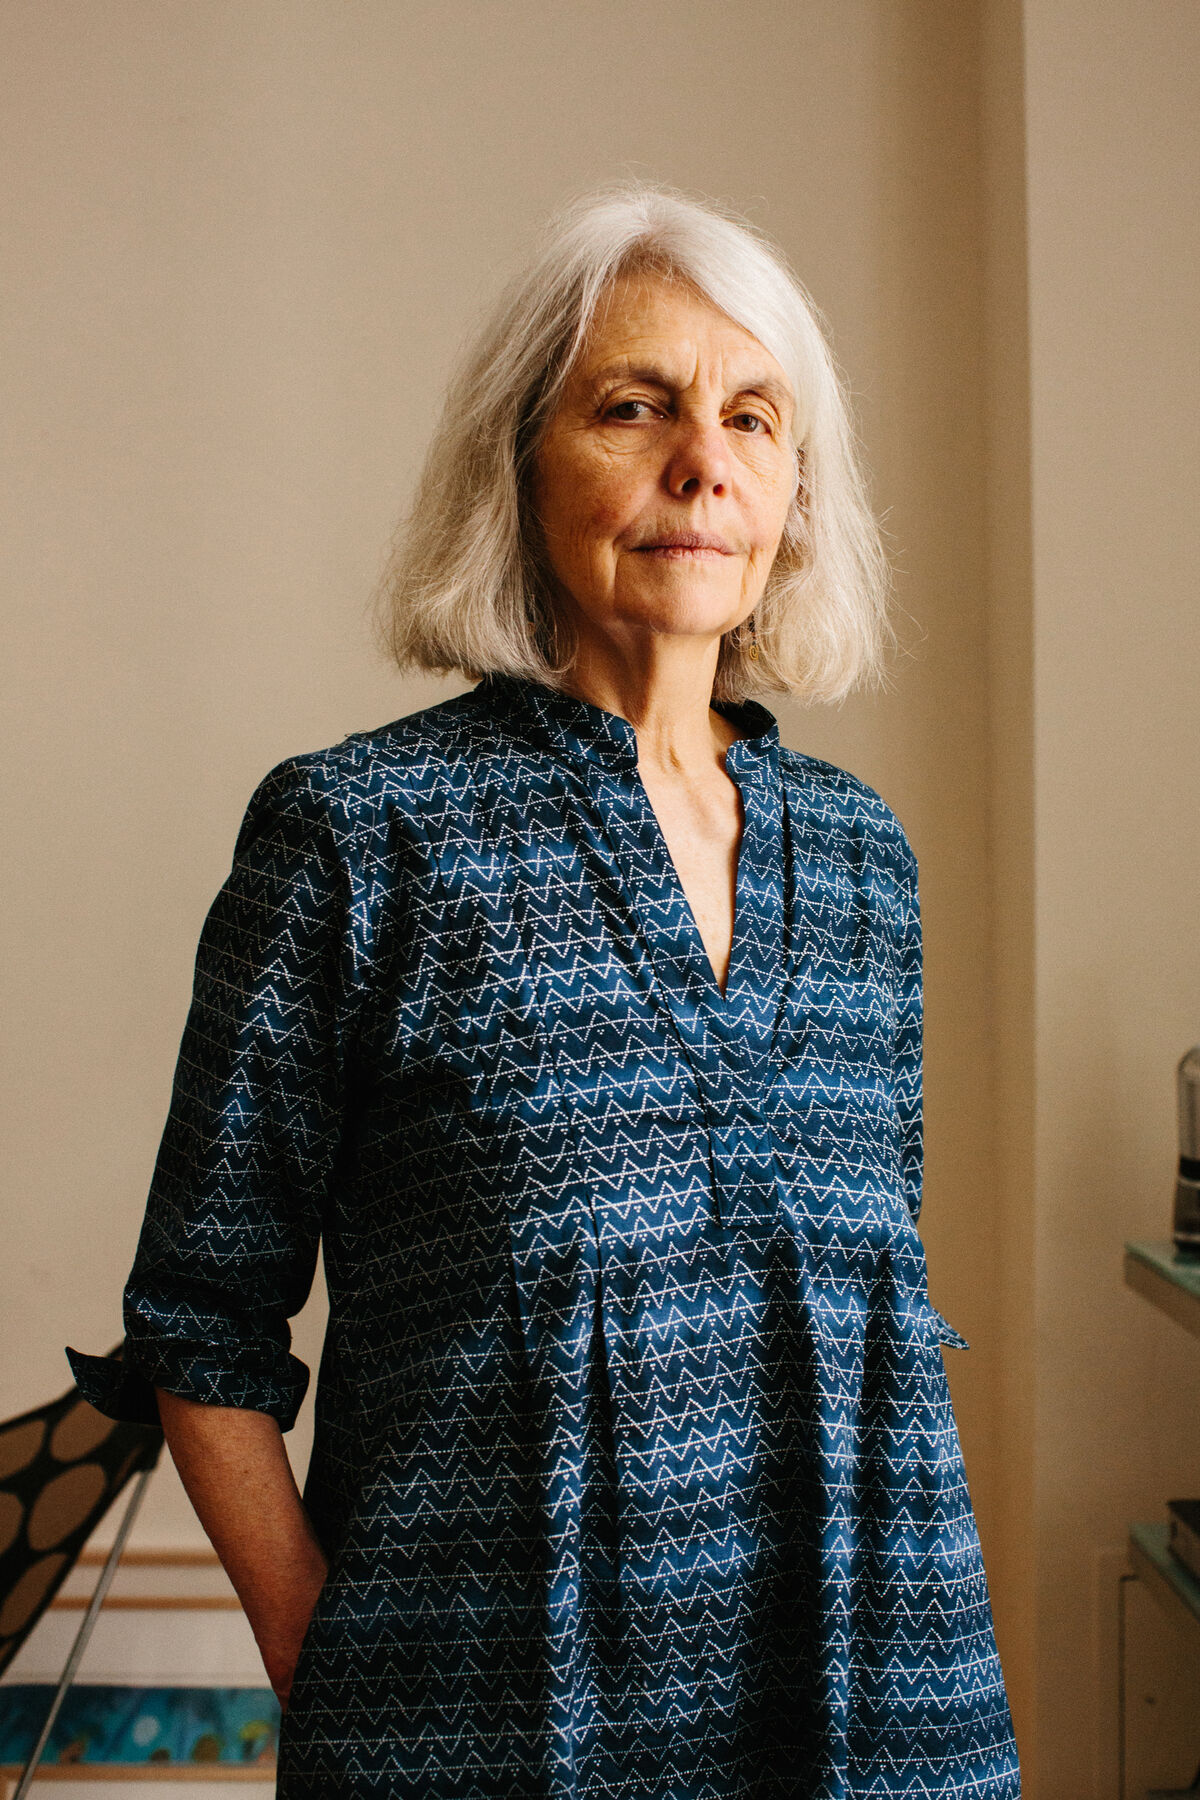 Portrait of Sally Saul by Stephanie Noritz for Artsy.